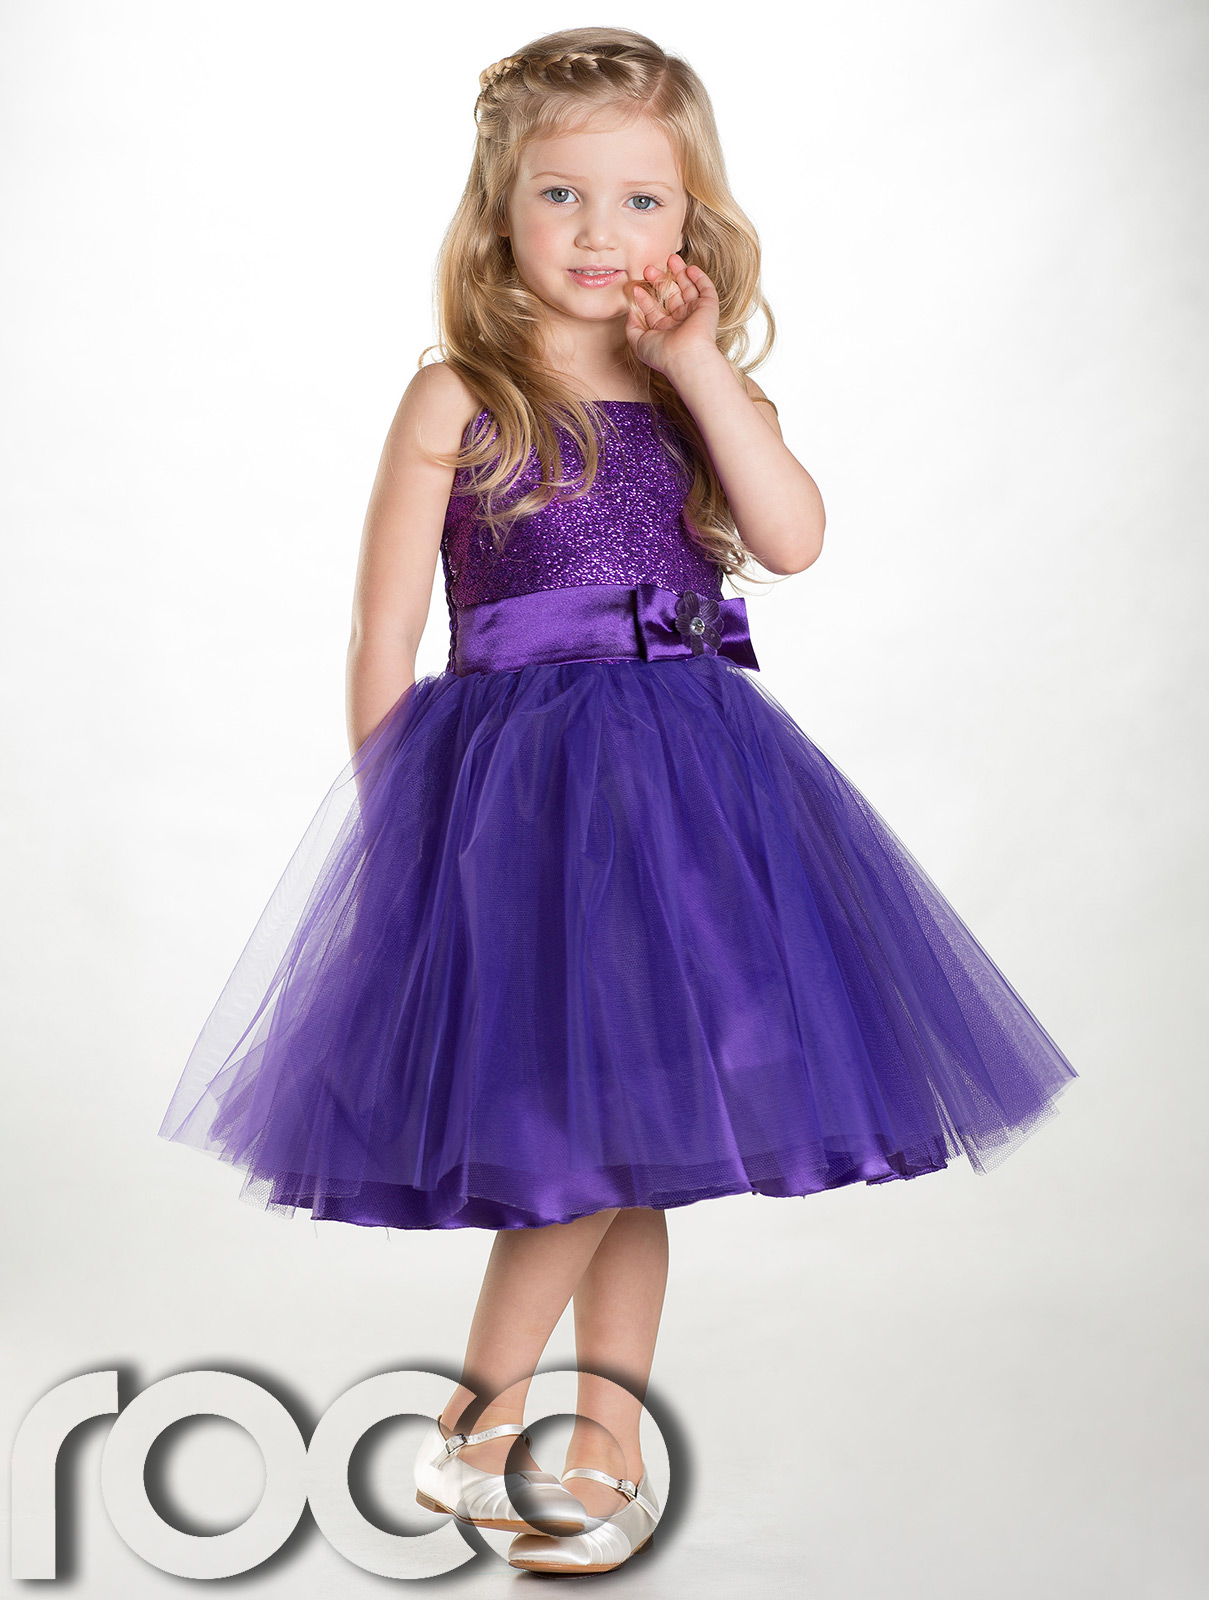 Get into this season's prettiest girls Dresses and Rompers with girlie attitude and a flirty fit.